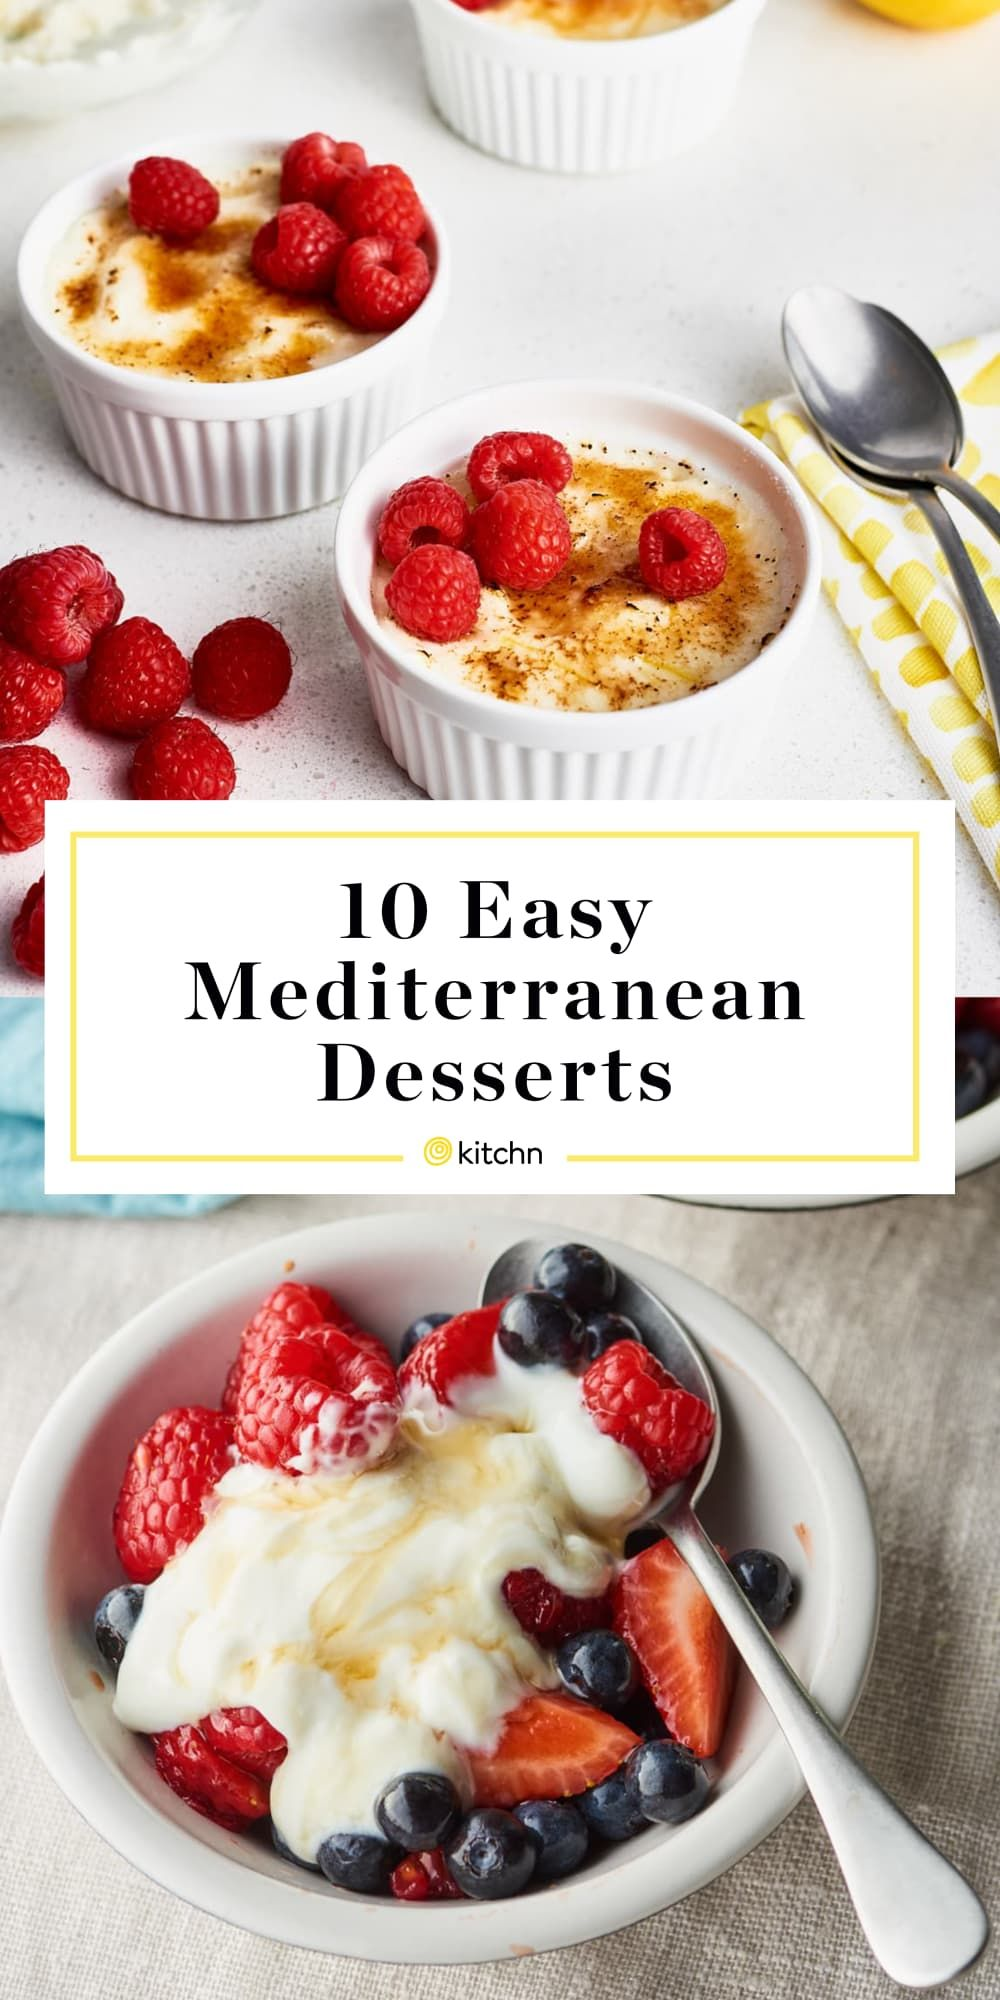 10 Desserts That Will Whisk You Away to the Mediterranean